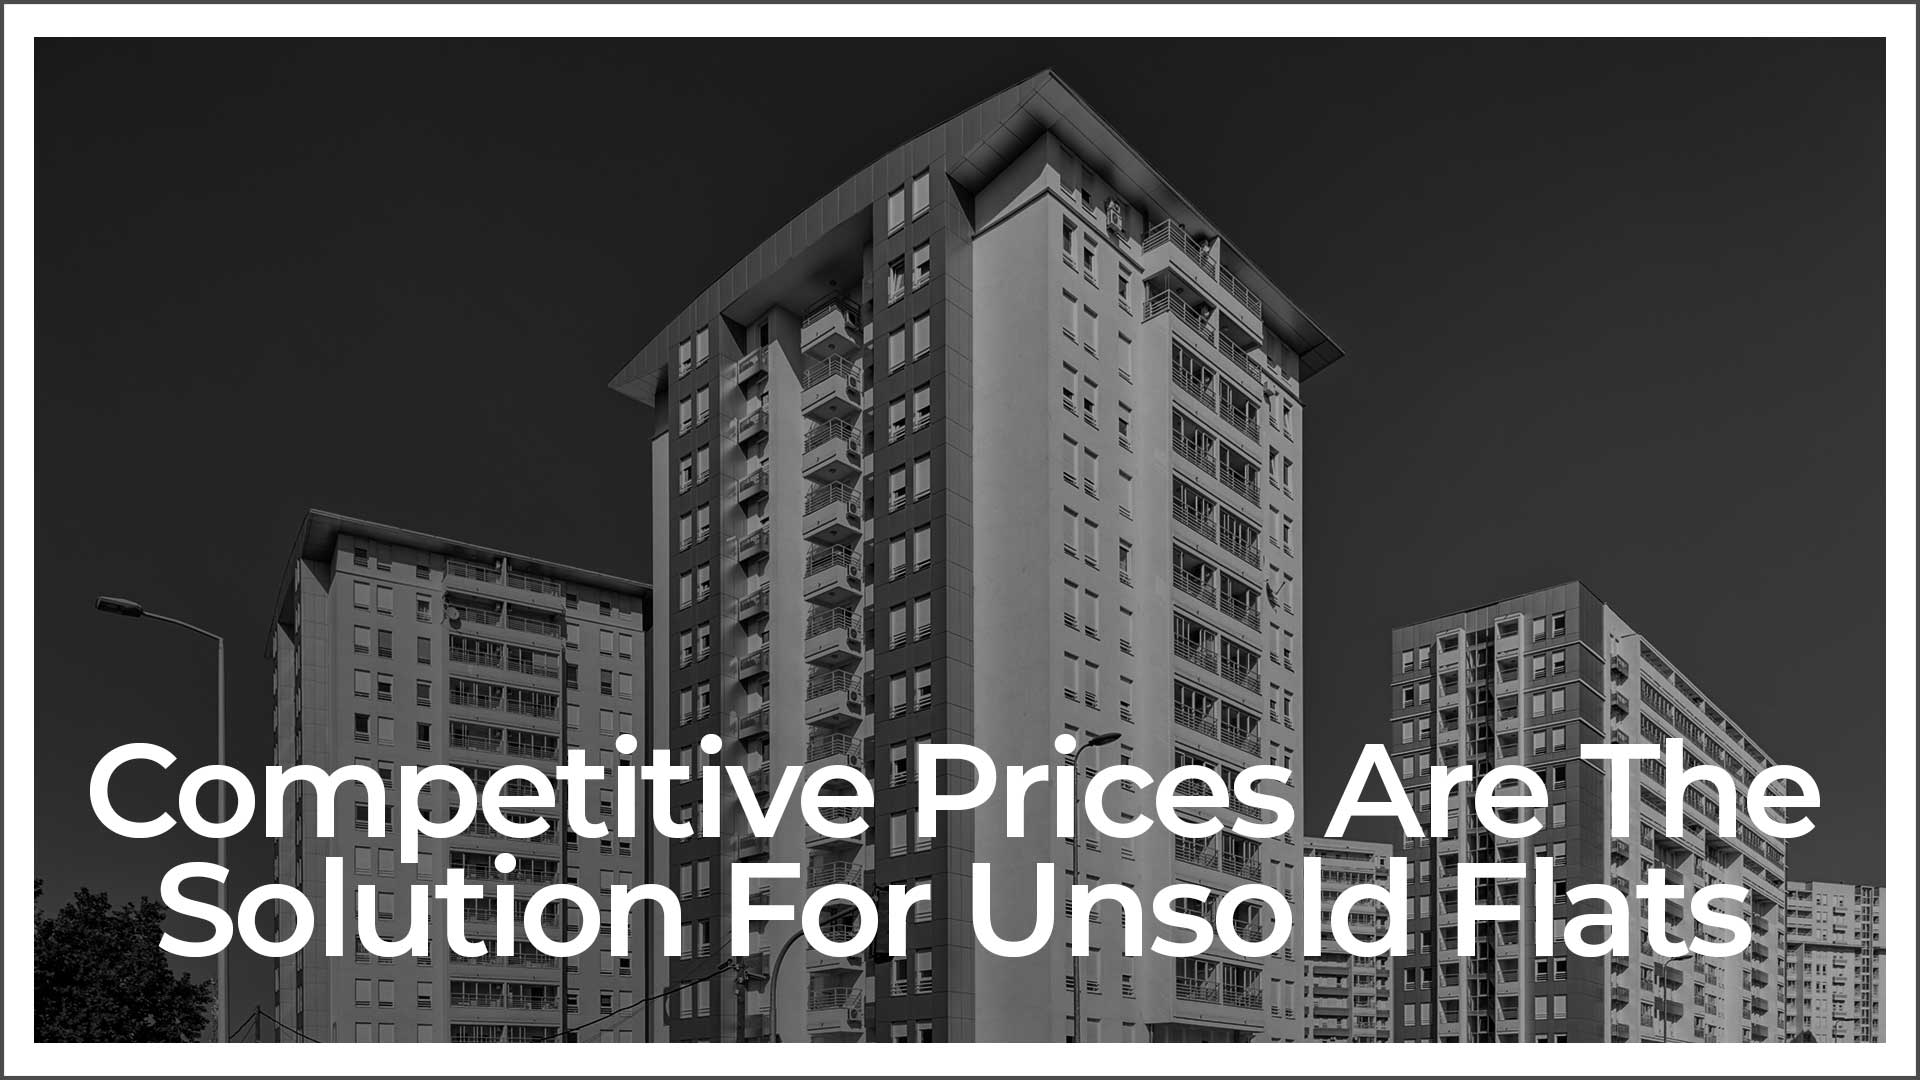 UP Government Urges For A Plan To Sell Unsold Flats